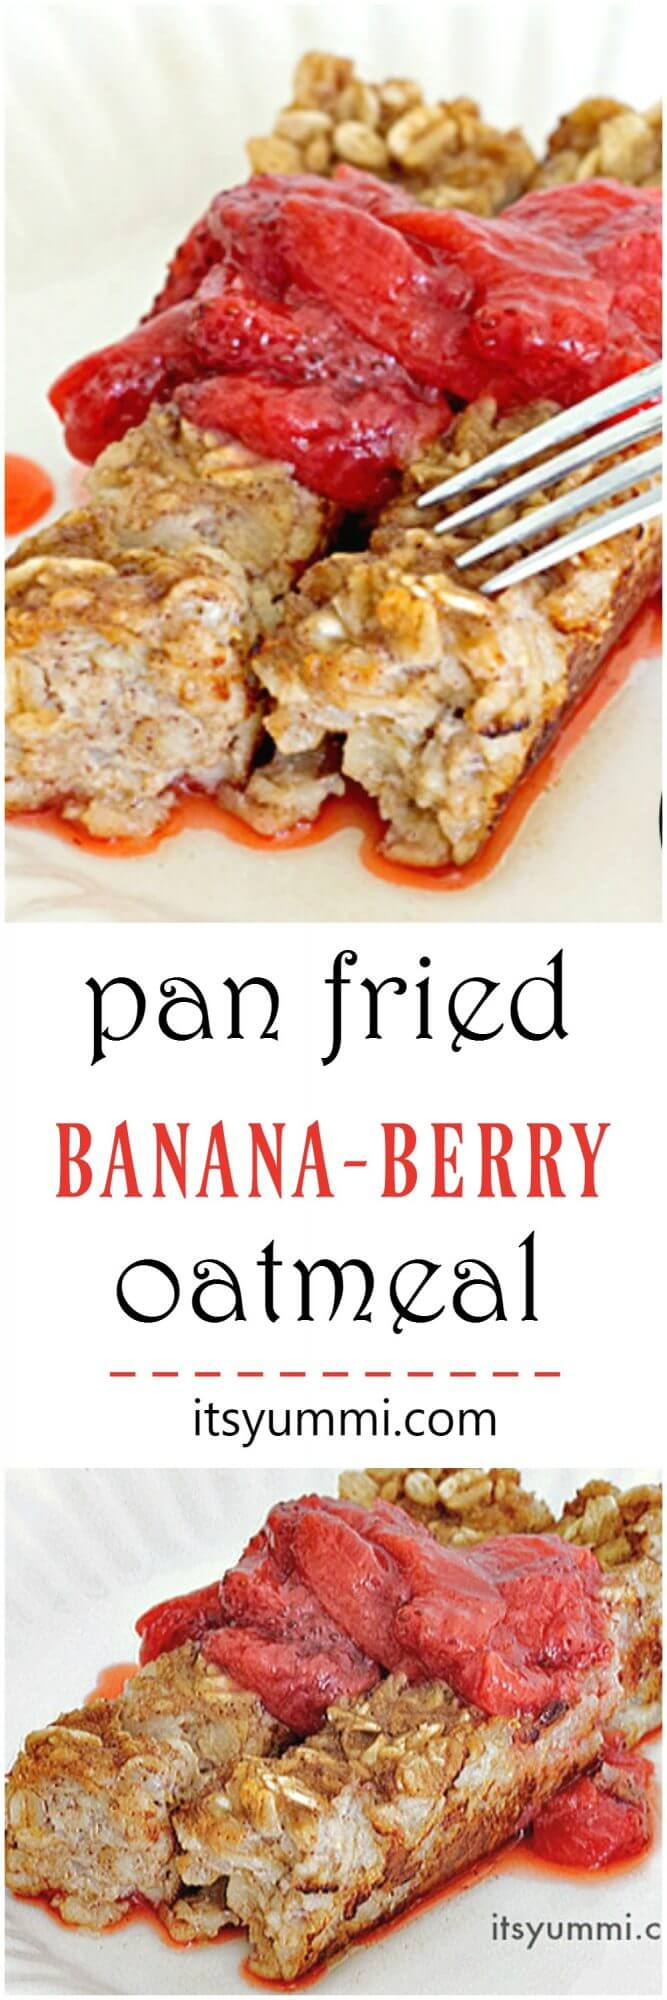 Pan Fried Banana-Berry Oatmeal - A kid friendly breakfast idea that's easy to make! Recipe on itsyummi.com